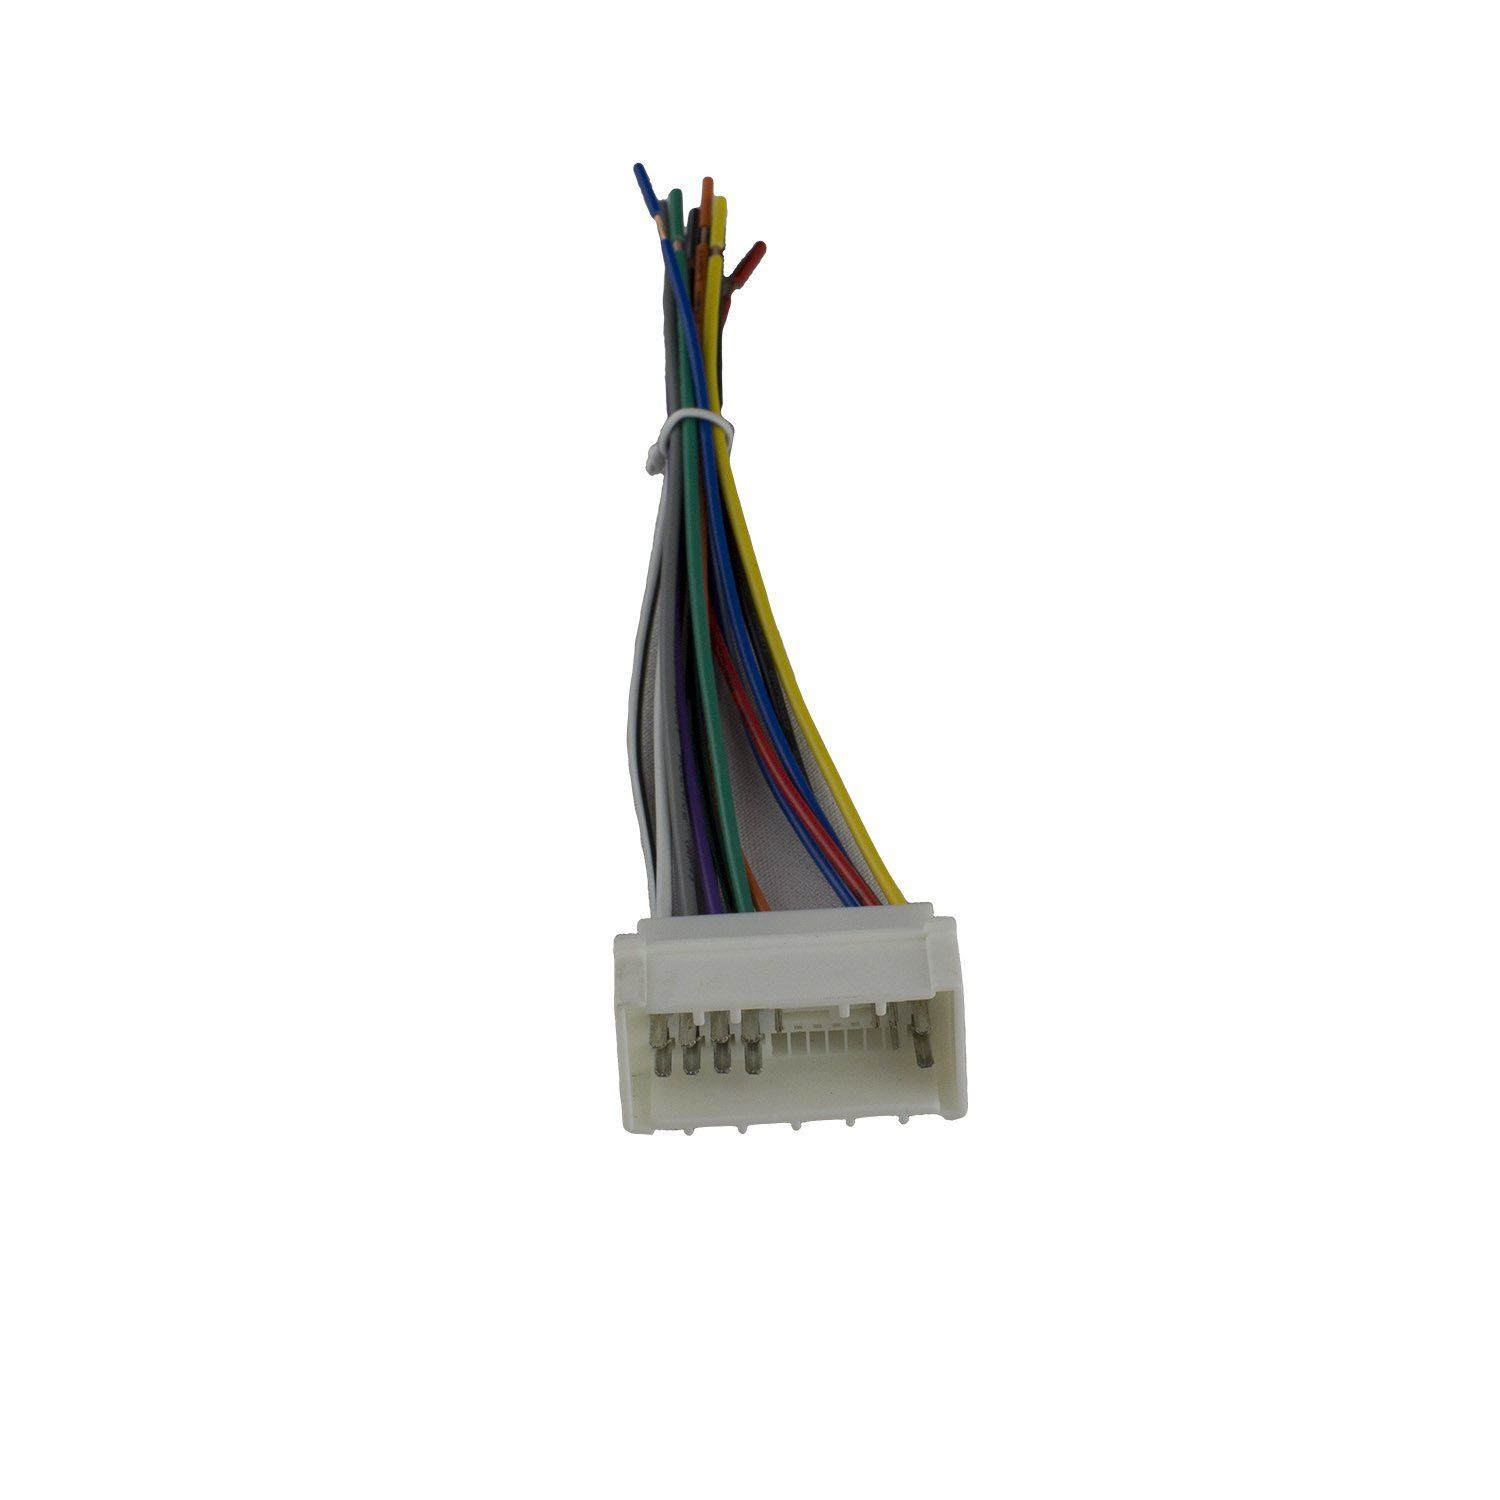 small resolution of novosonics haf 1106 car stereo wiring harness for hyundai kia 2006 2008 fits existing connector in your vehicle no cutting existing car wiring required